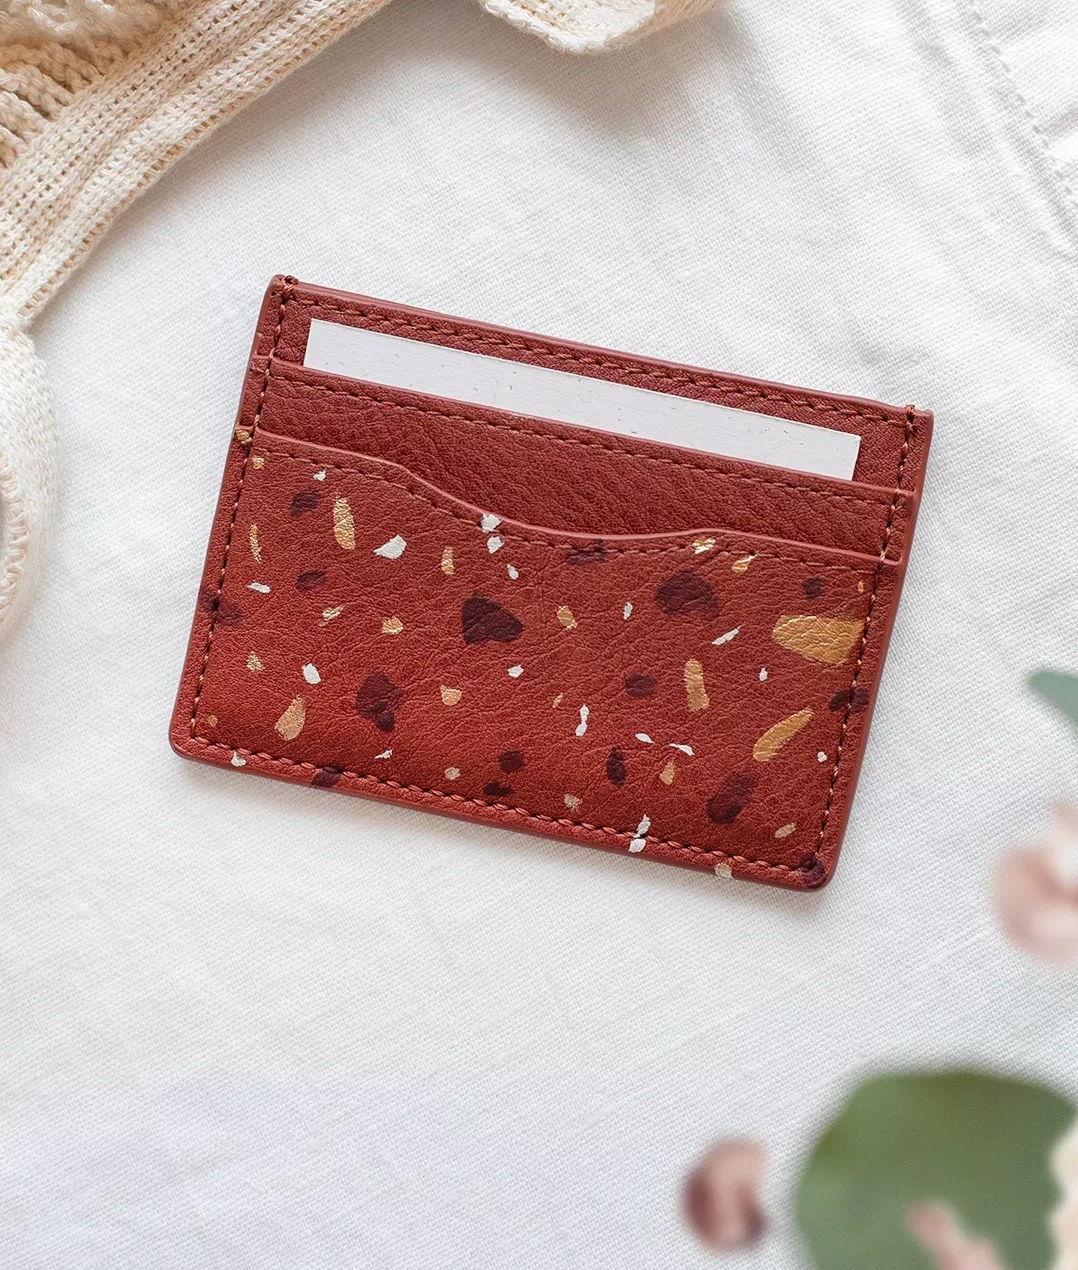 Ive been trying to get a smaller wallet but I havent liked any. this would be perfect !